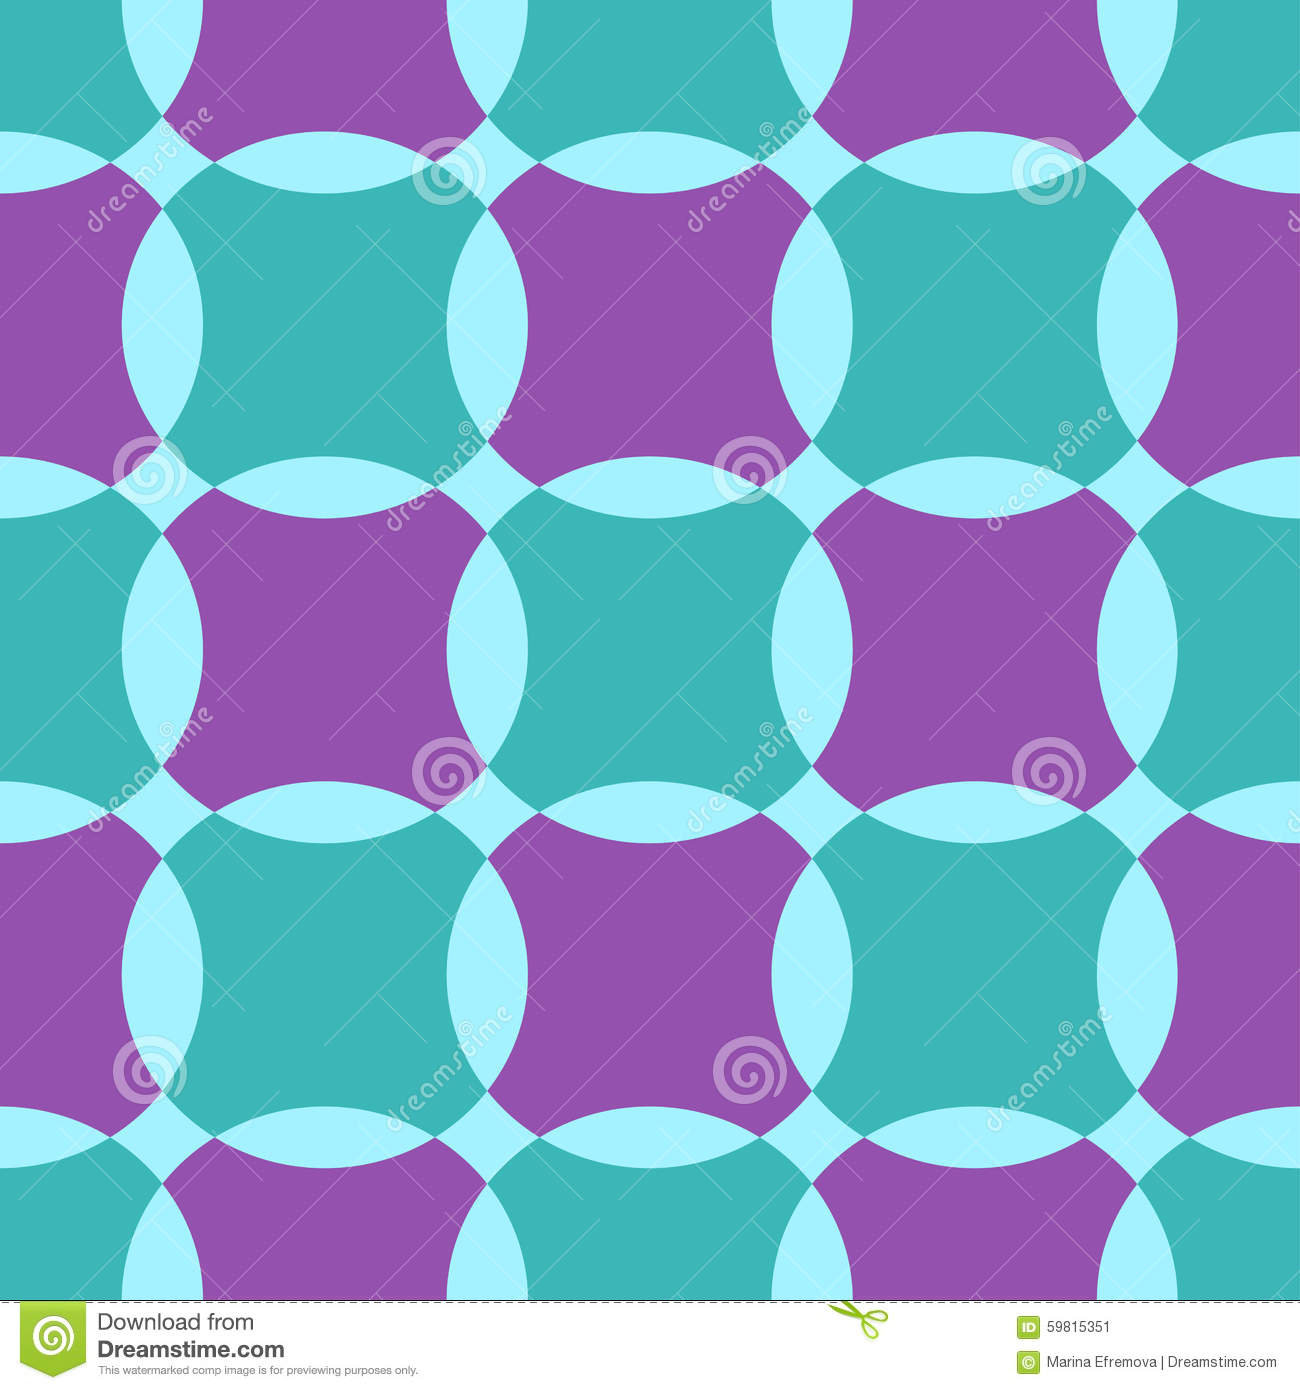 Wallpapers pattern fills web page backgrounds surface textures - Abstract Background Can Circles Fills Geometric Page Paper Pattern Seamless Surface Textures Used Wallpaper Web